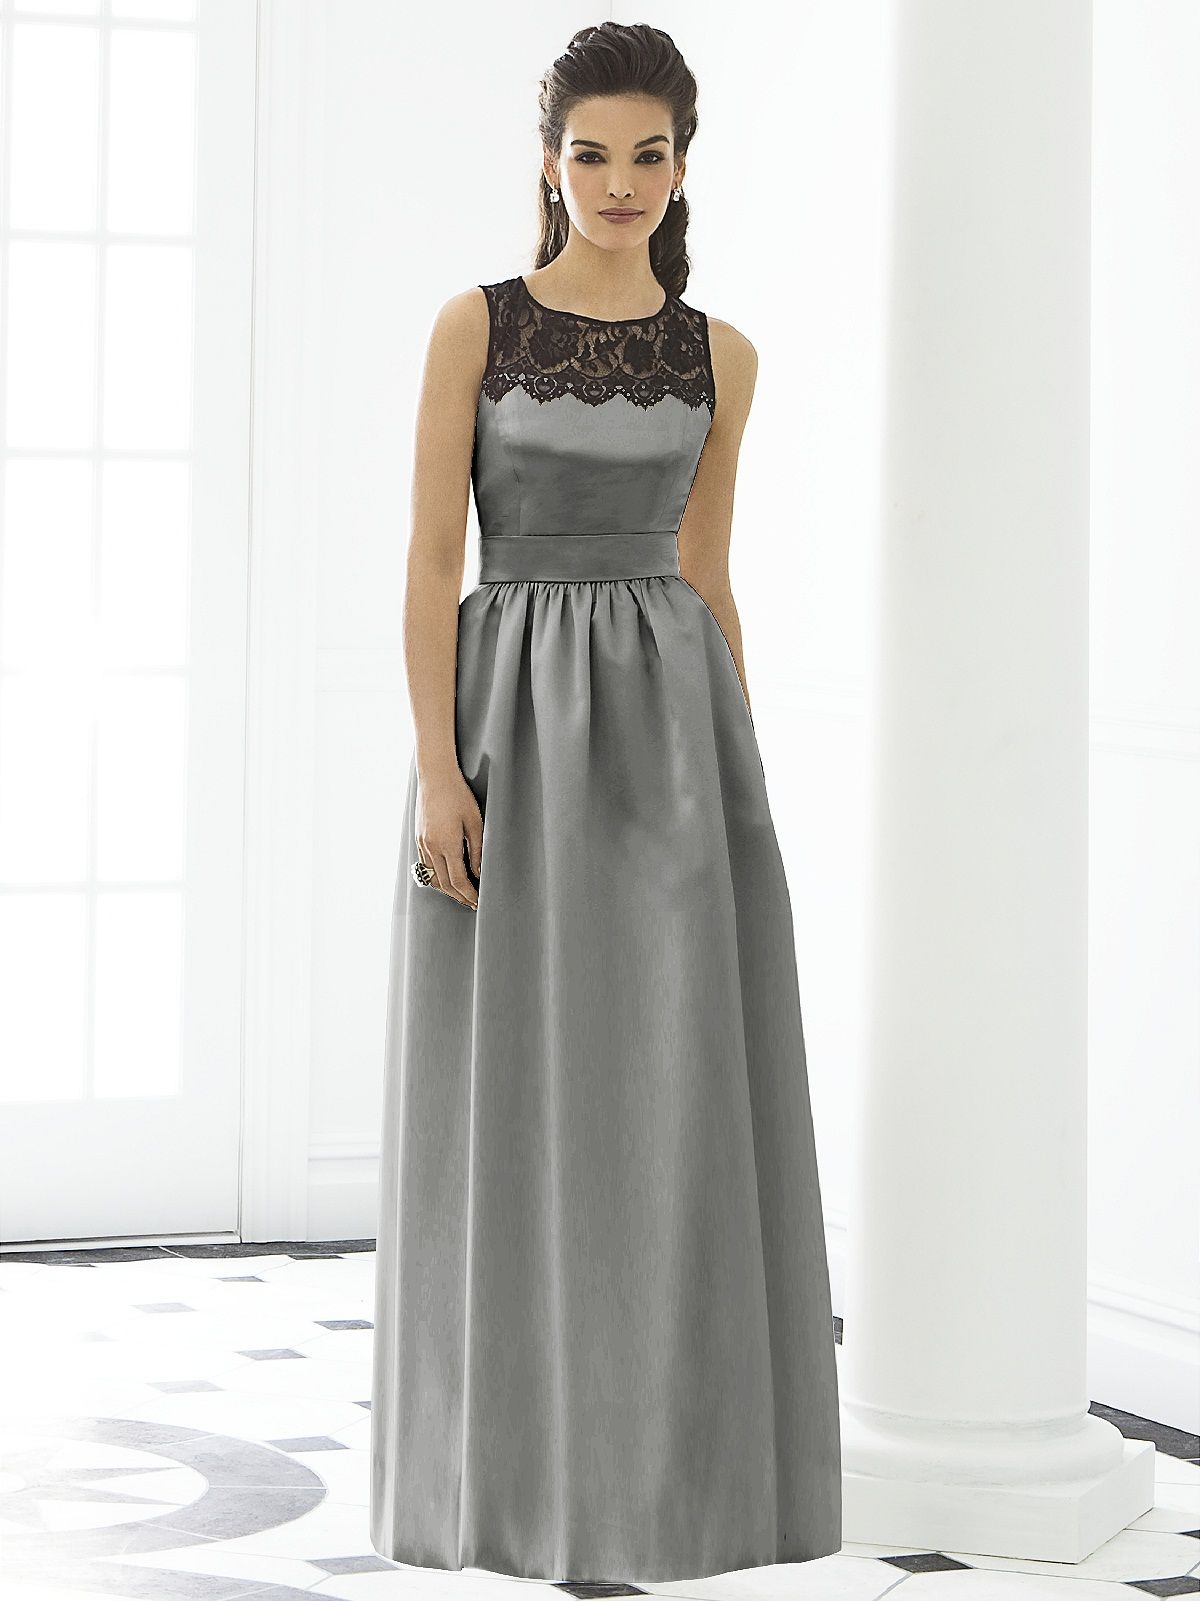 Grey and lace bridesmaid dress perfect potential wedding